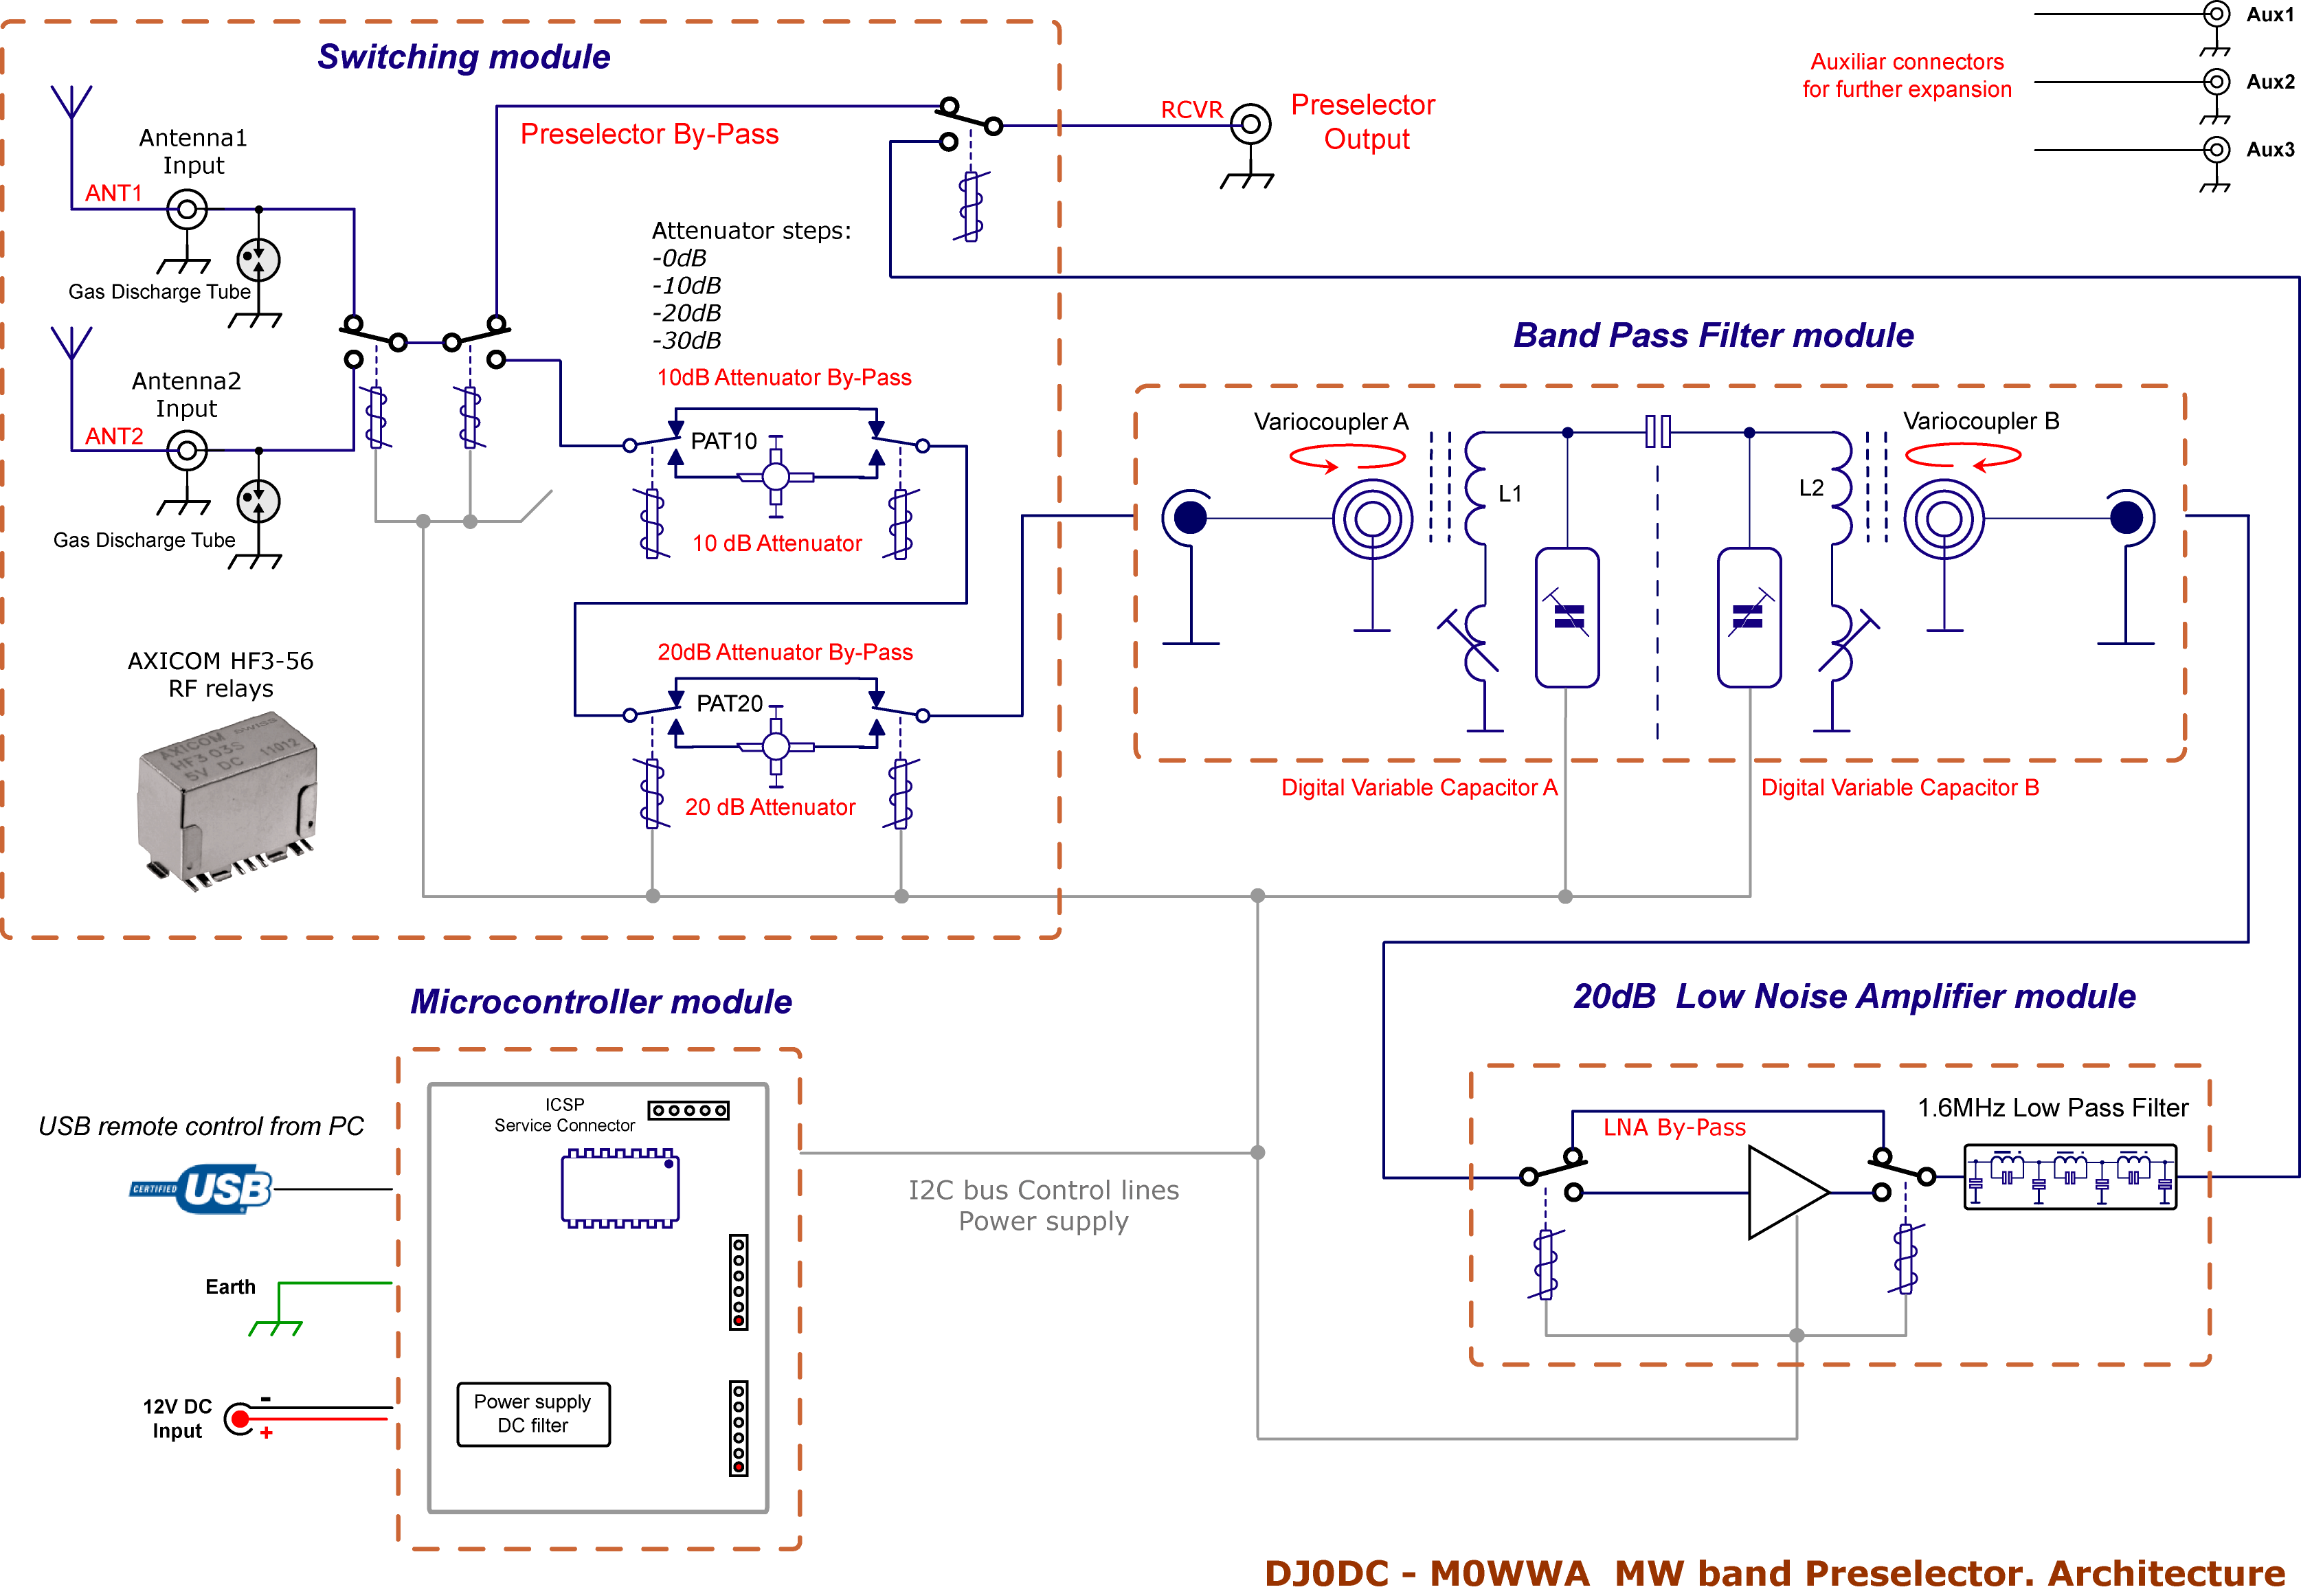 M0wwa Mf Band Preselector Lc Circuit Aka Tank Or Resonant The Circuitry Diagram